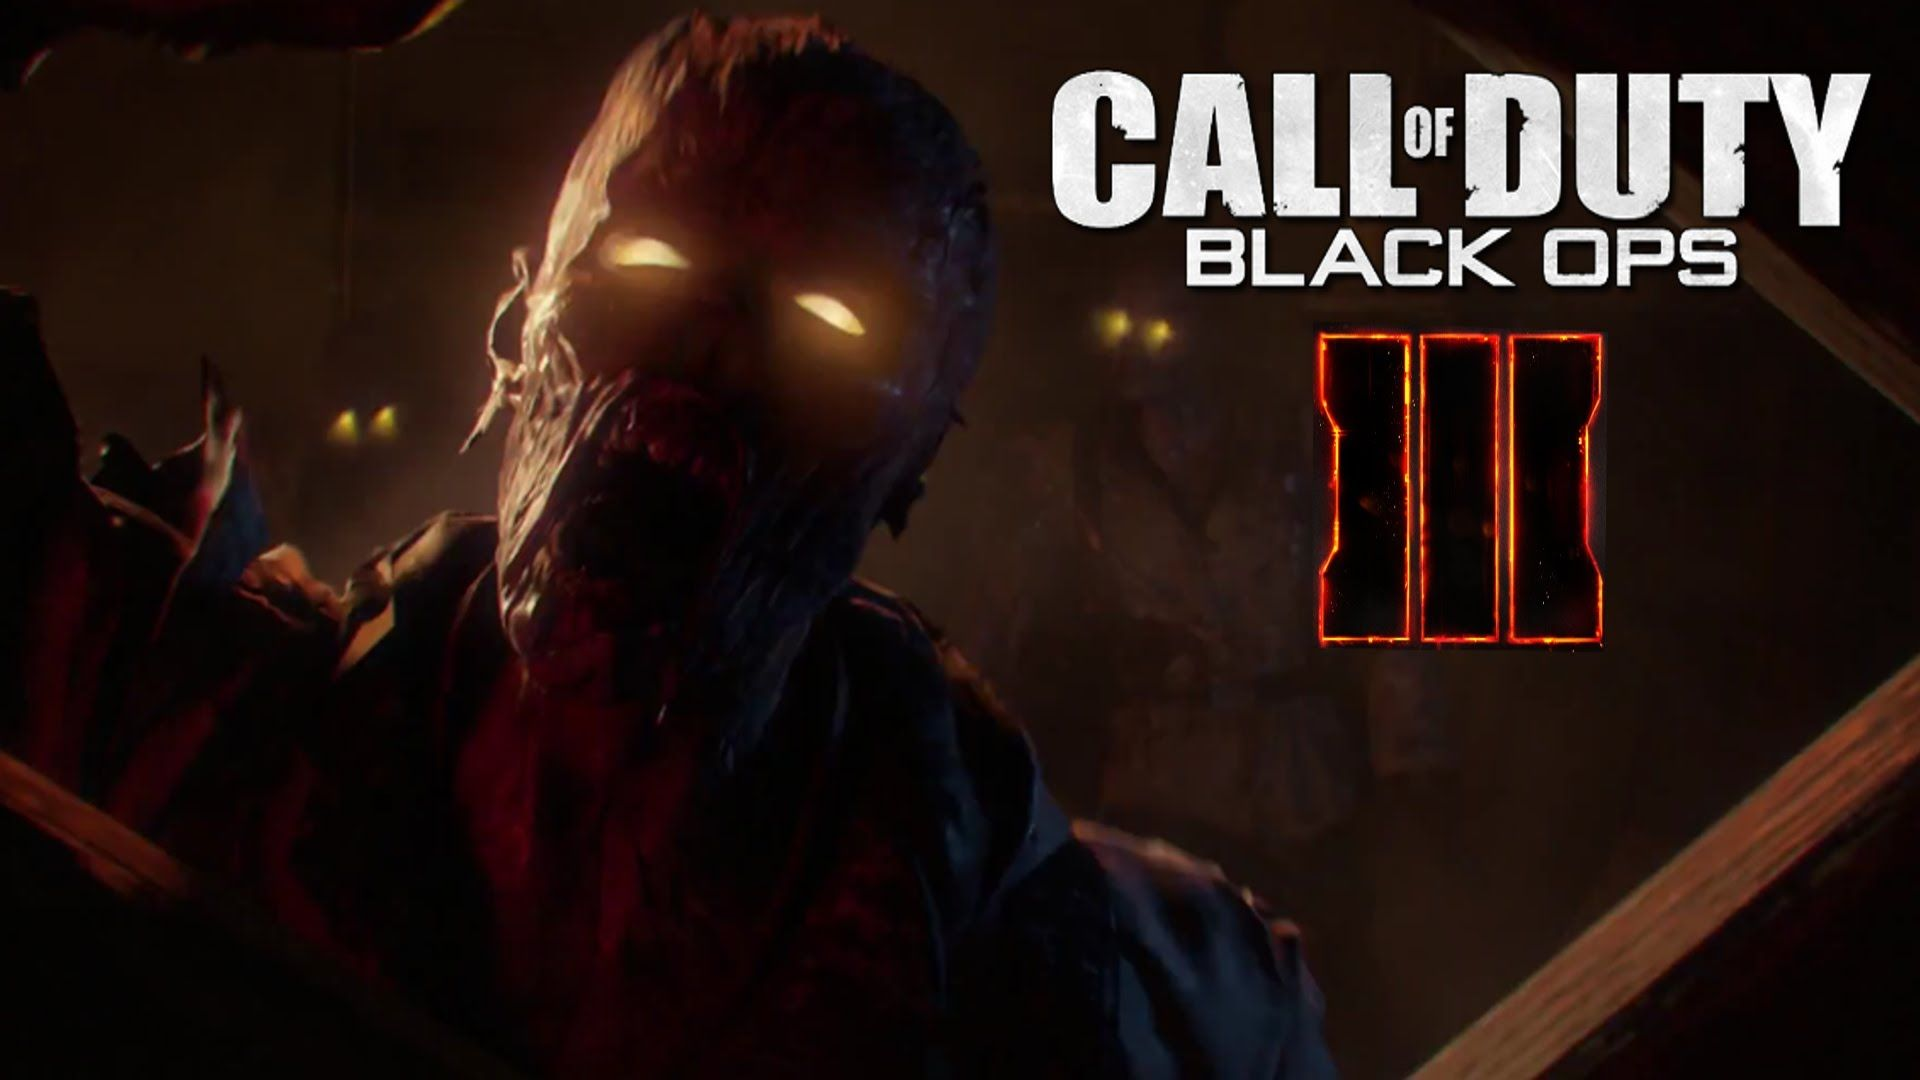 Call Of Duty Black Ops 3 Wallpapers Wallpaper Cave Cod Black